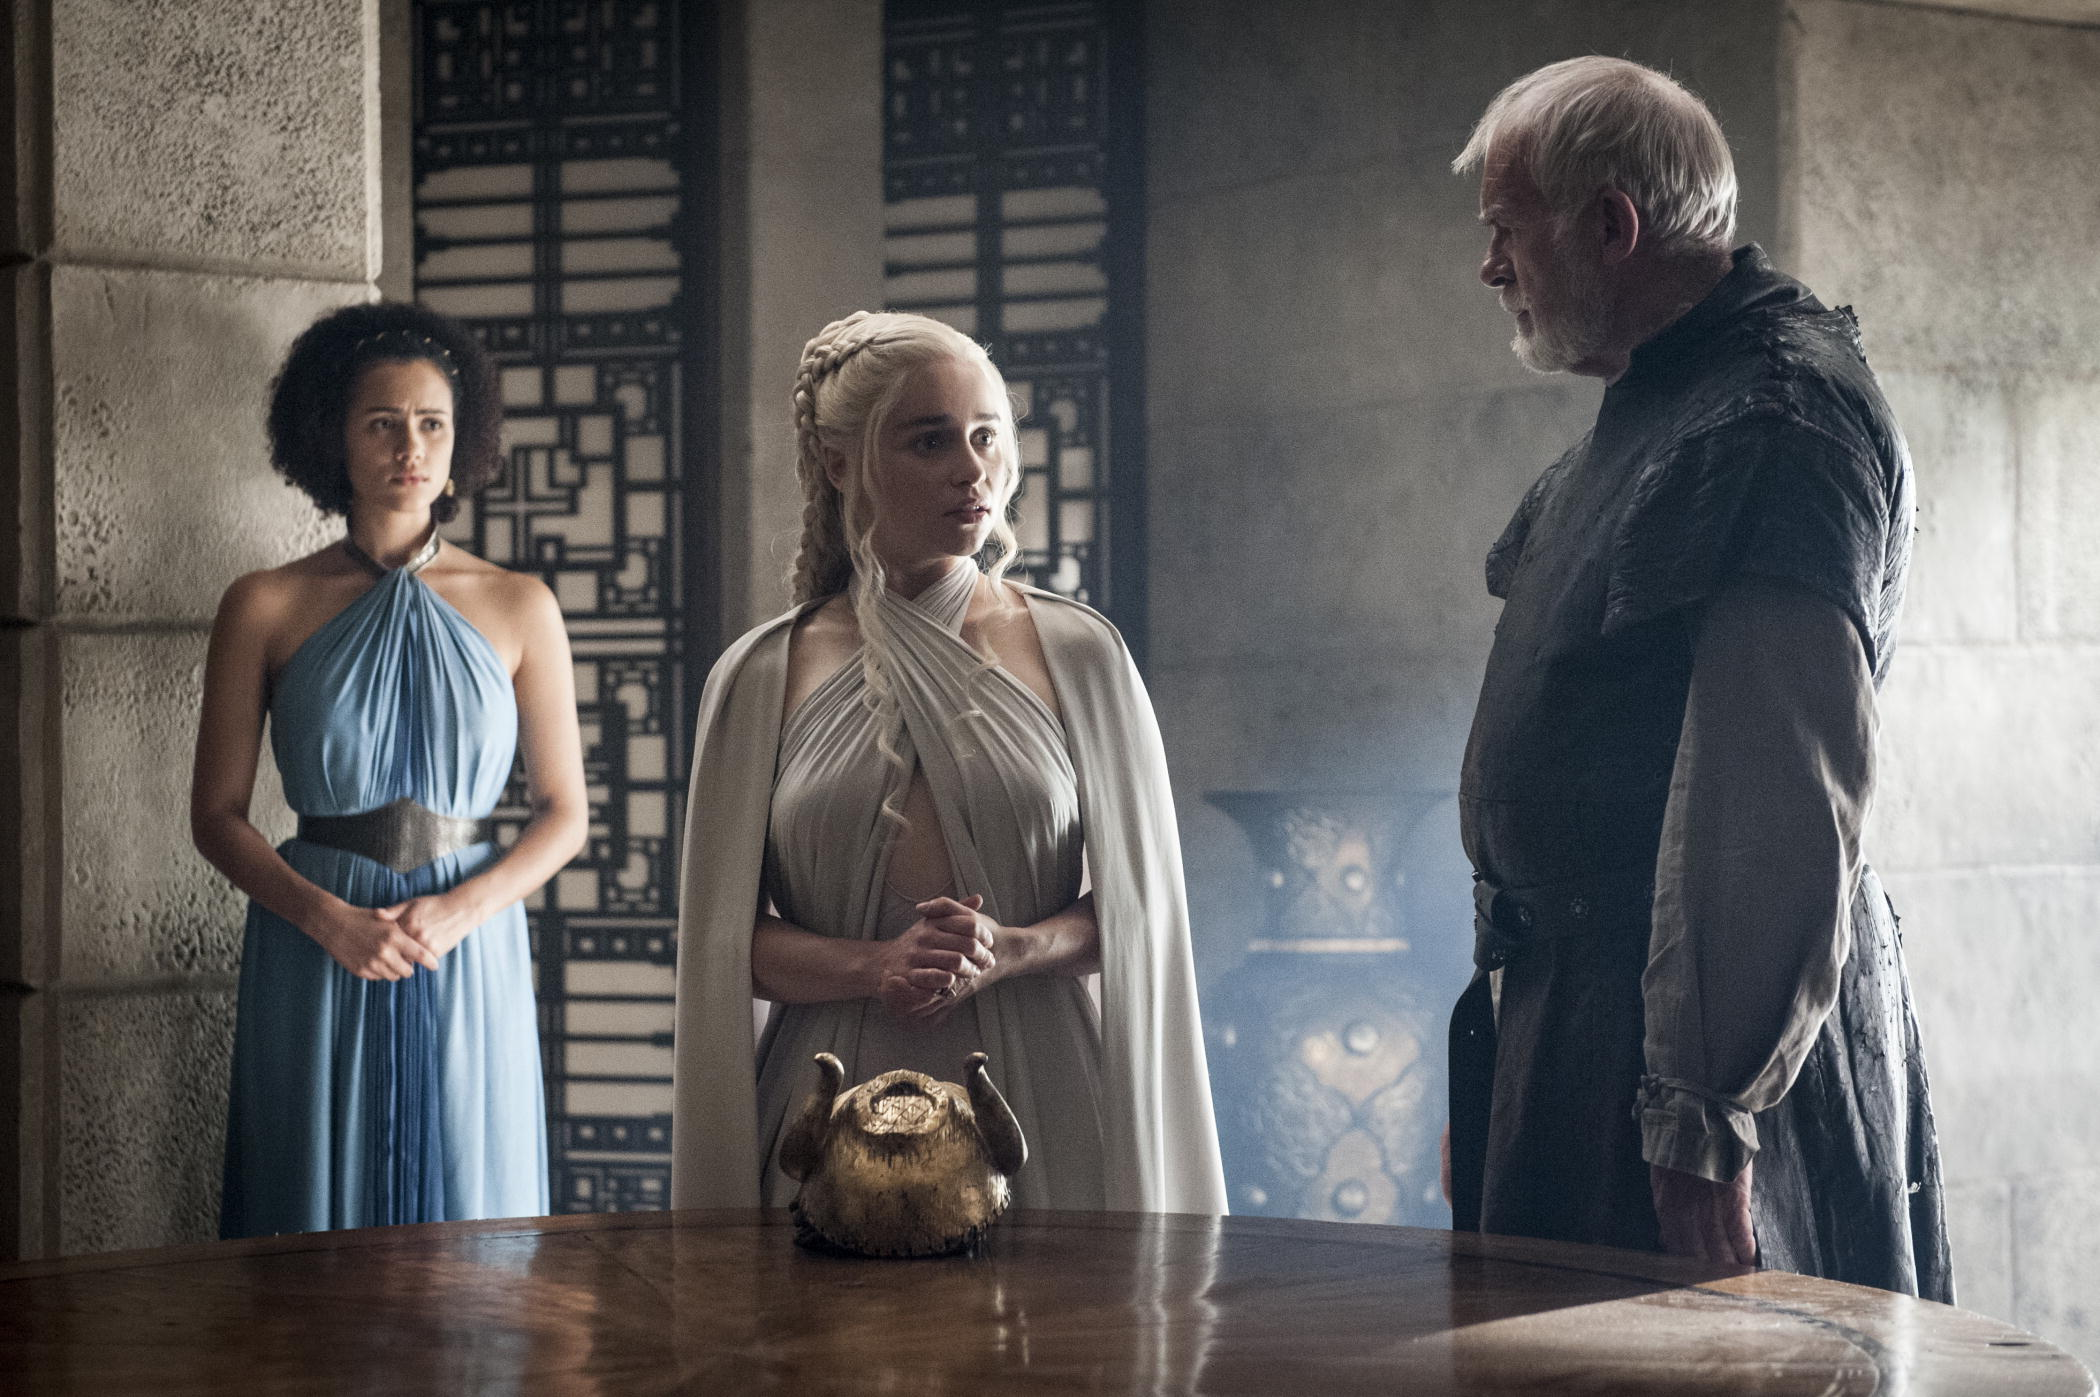 Review: 'Game of Thrones' Season 5 Episode 1, 'The Wars to Come